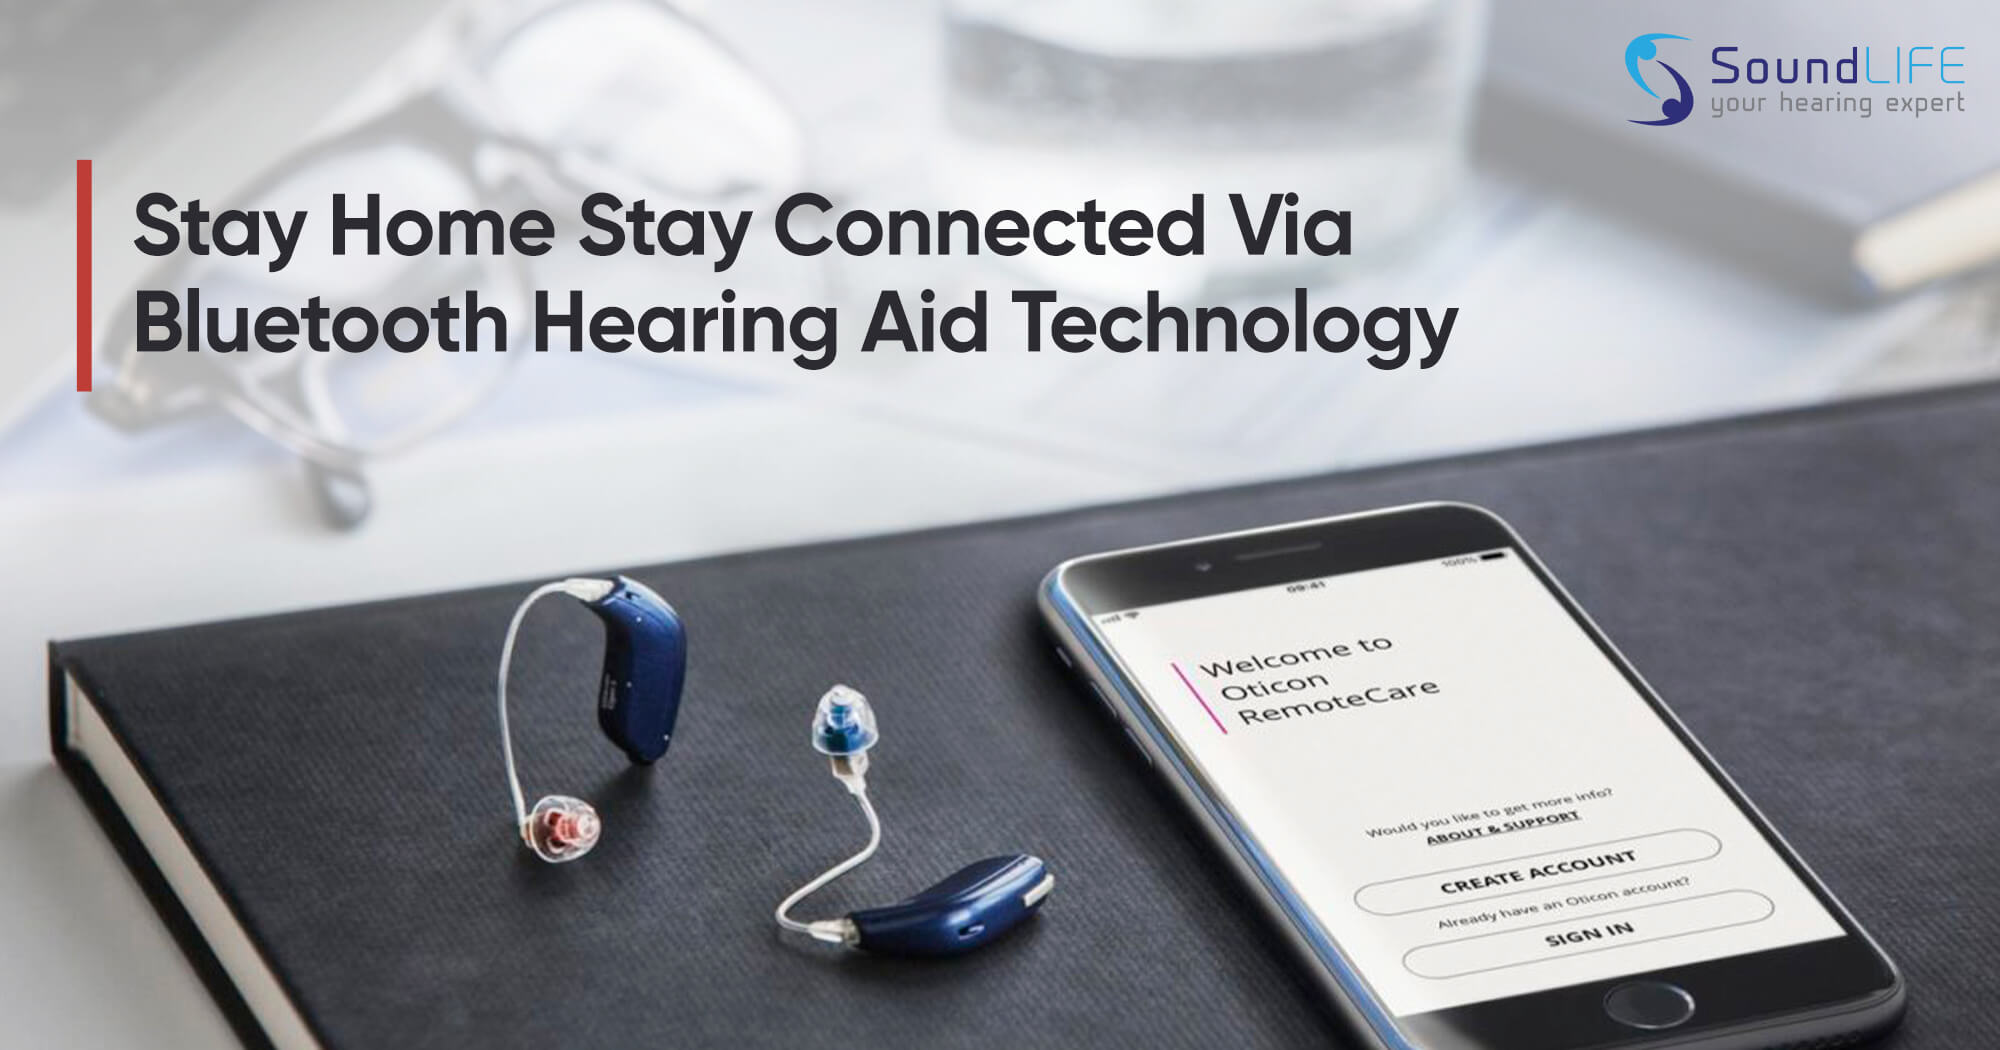 Soundlife Blogspot Stay Home & Connected With Bluetooth Hearing Aid Soundlife Hearing